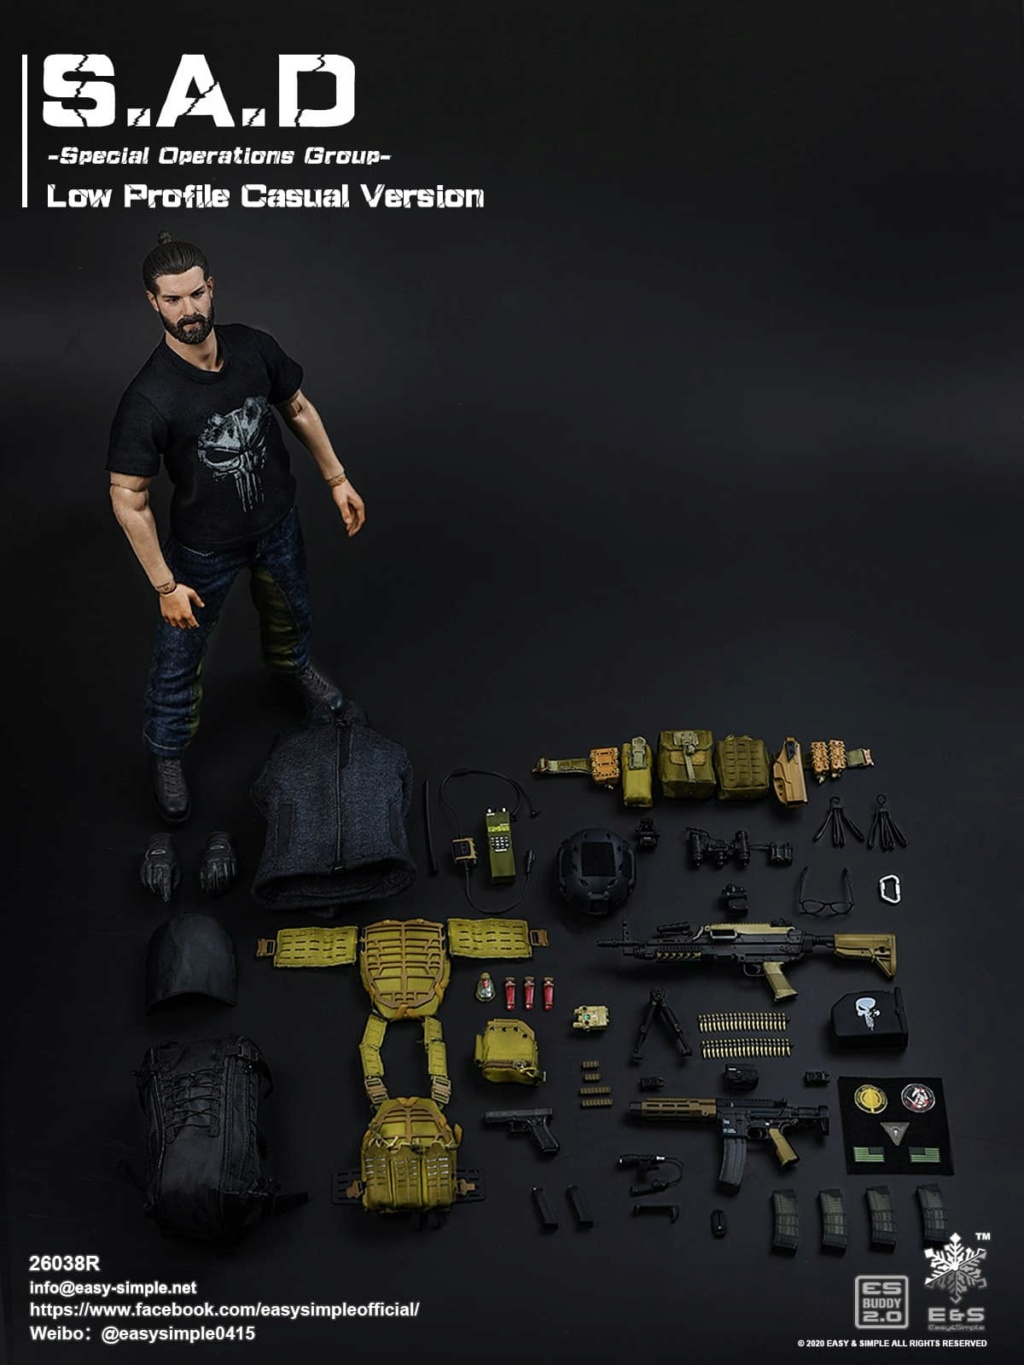 ModernMilitary - NEW PRODUCT: Easy&Simple: 26038R 1/6 Scale S.A.D Special Operation Group action figure 3392